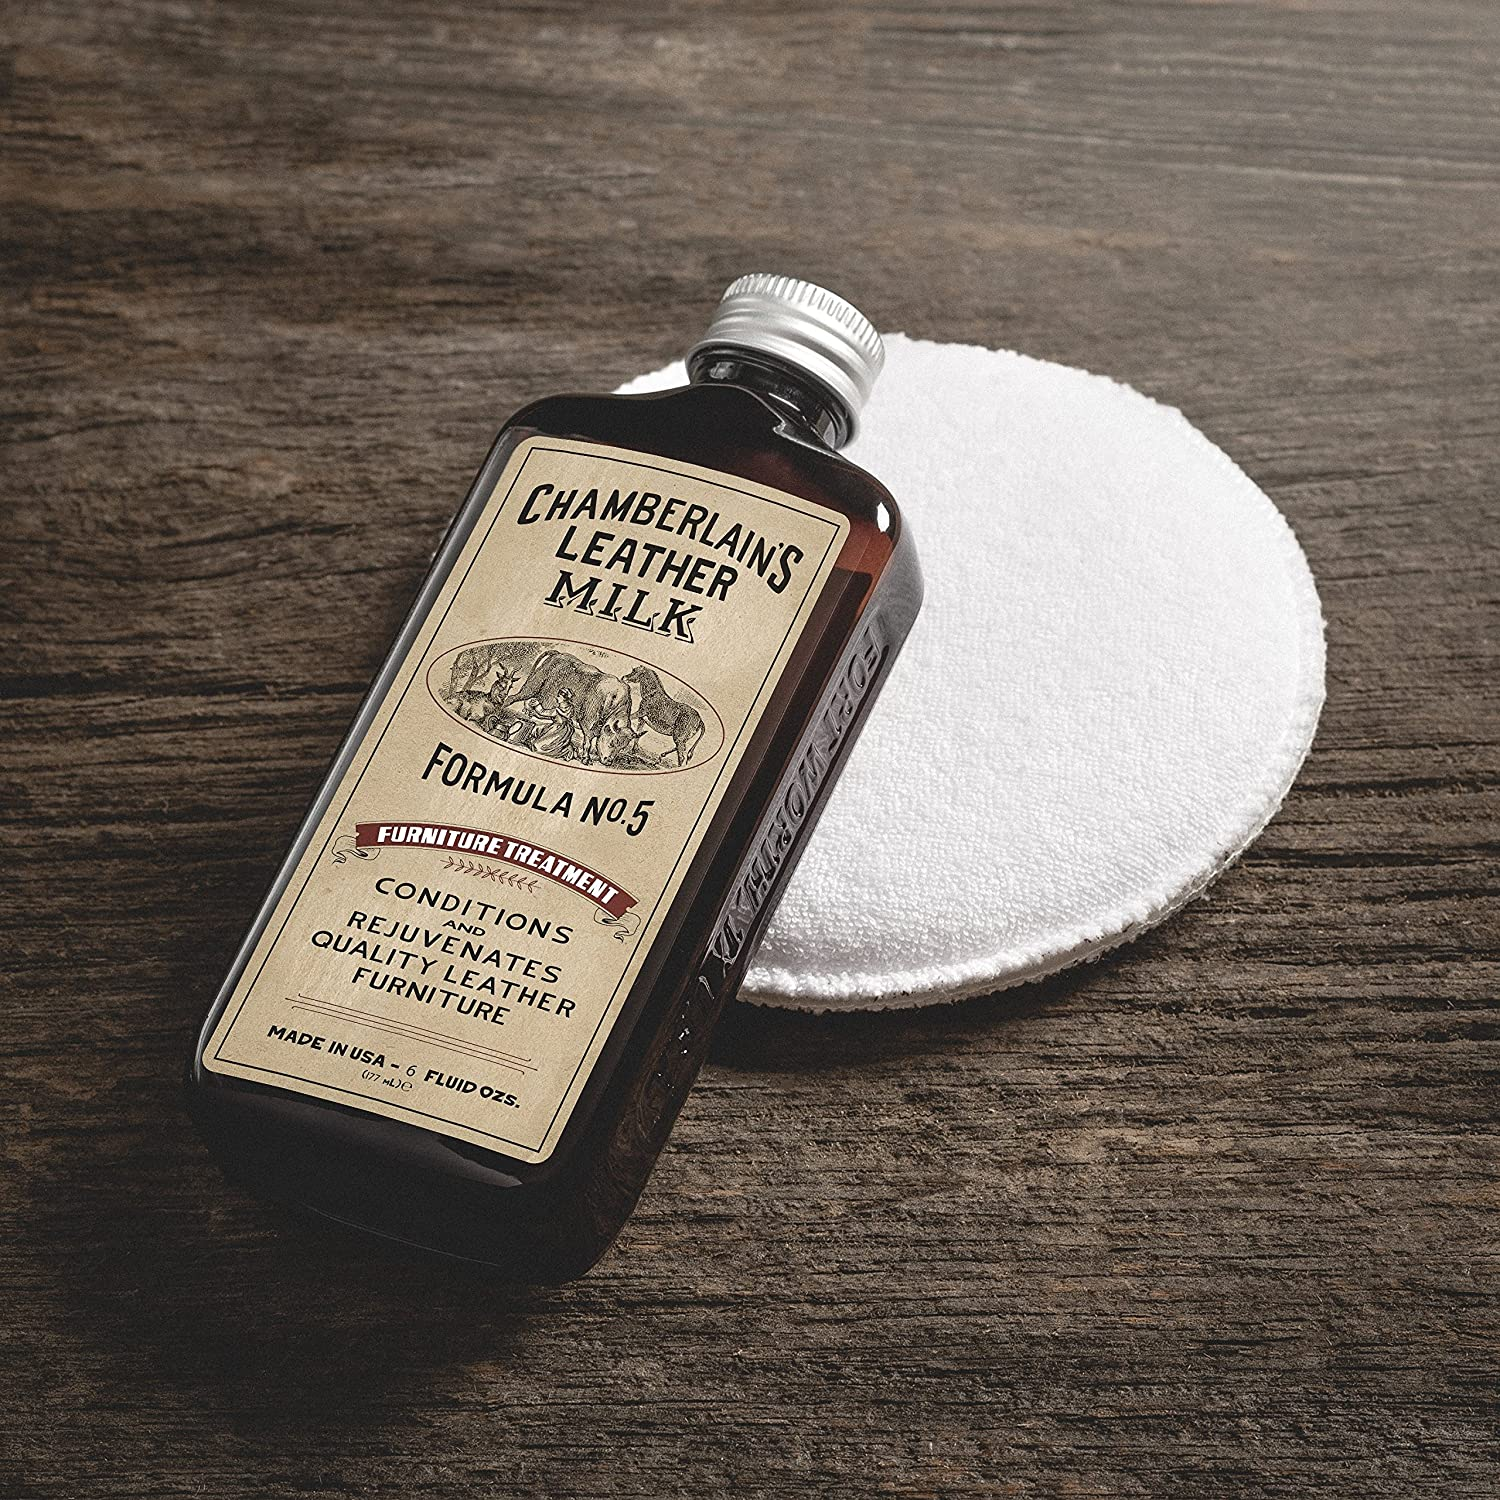 Amazon.com: Leather Milk Leather Furniture Conditioner and Cleaner - Furniture  Treatment No. 5 - For All Natural, Non-Toxic Leather Care. Made in the USA.